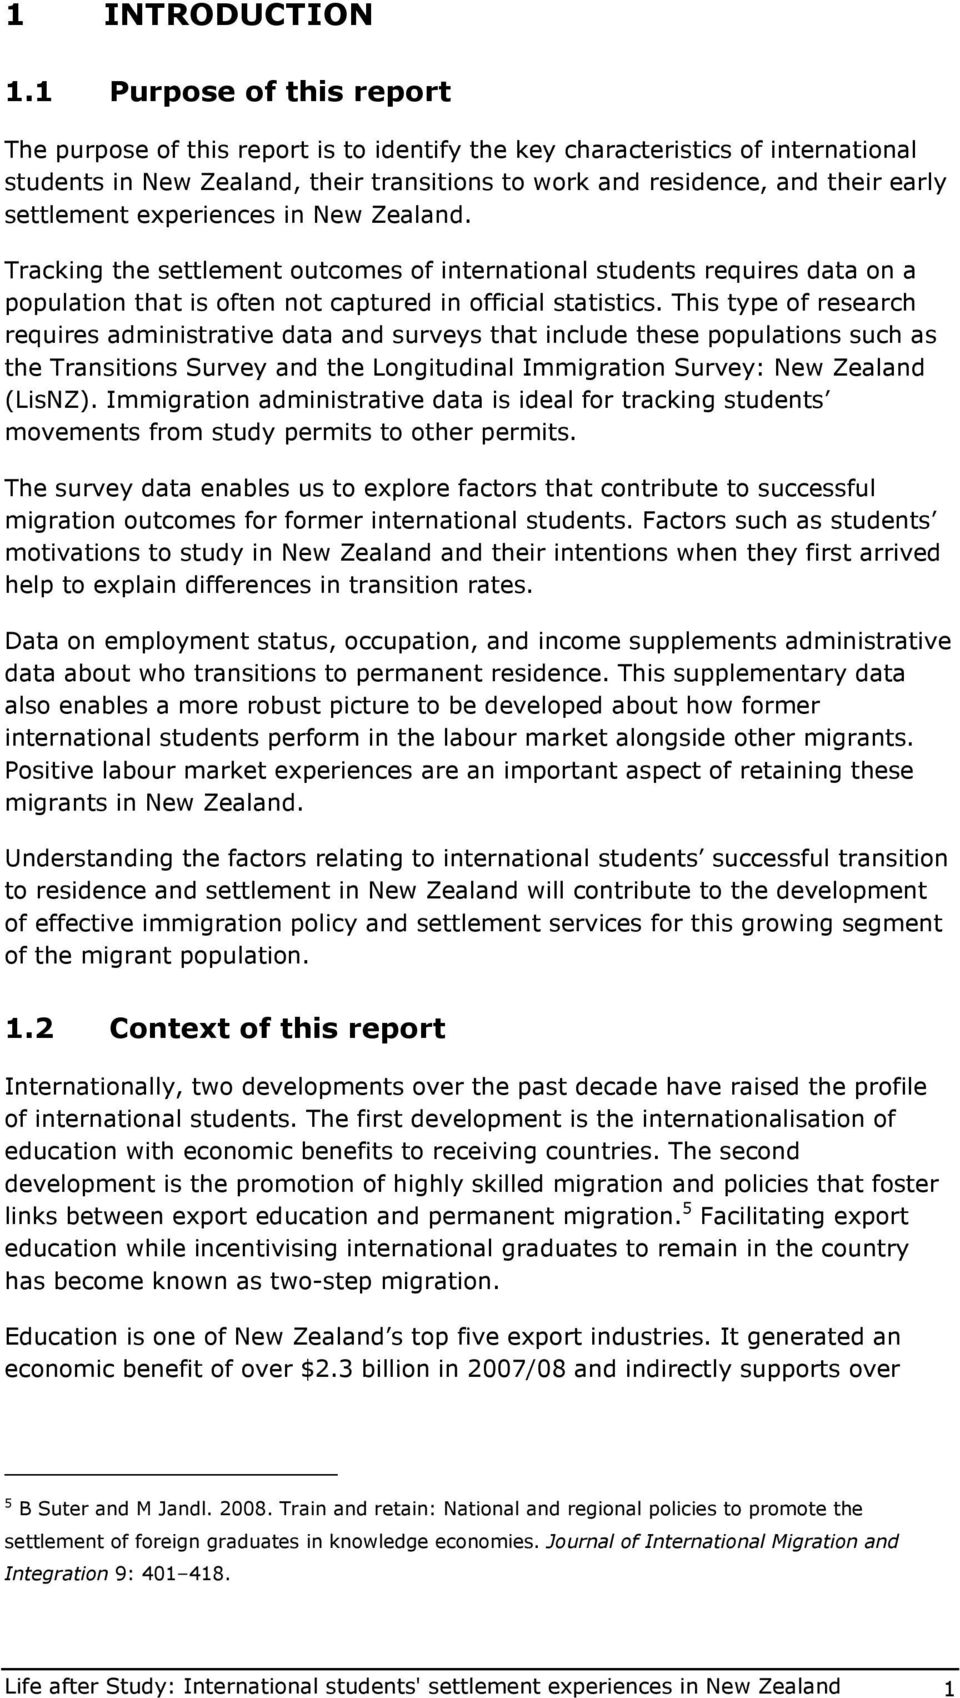 experiences in New Zealand. Tracking the settlement utcmes f internatinal students requires data n a ppulatin that is ften nt captured in fficial statistics.